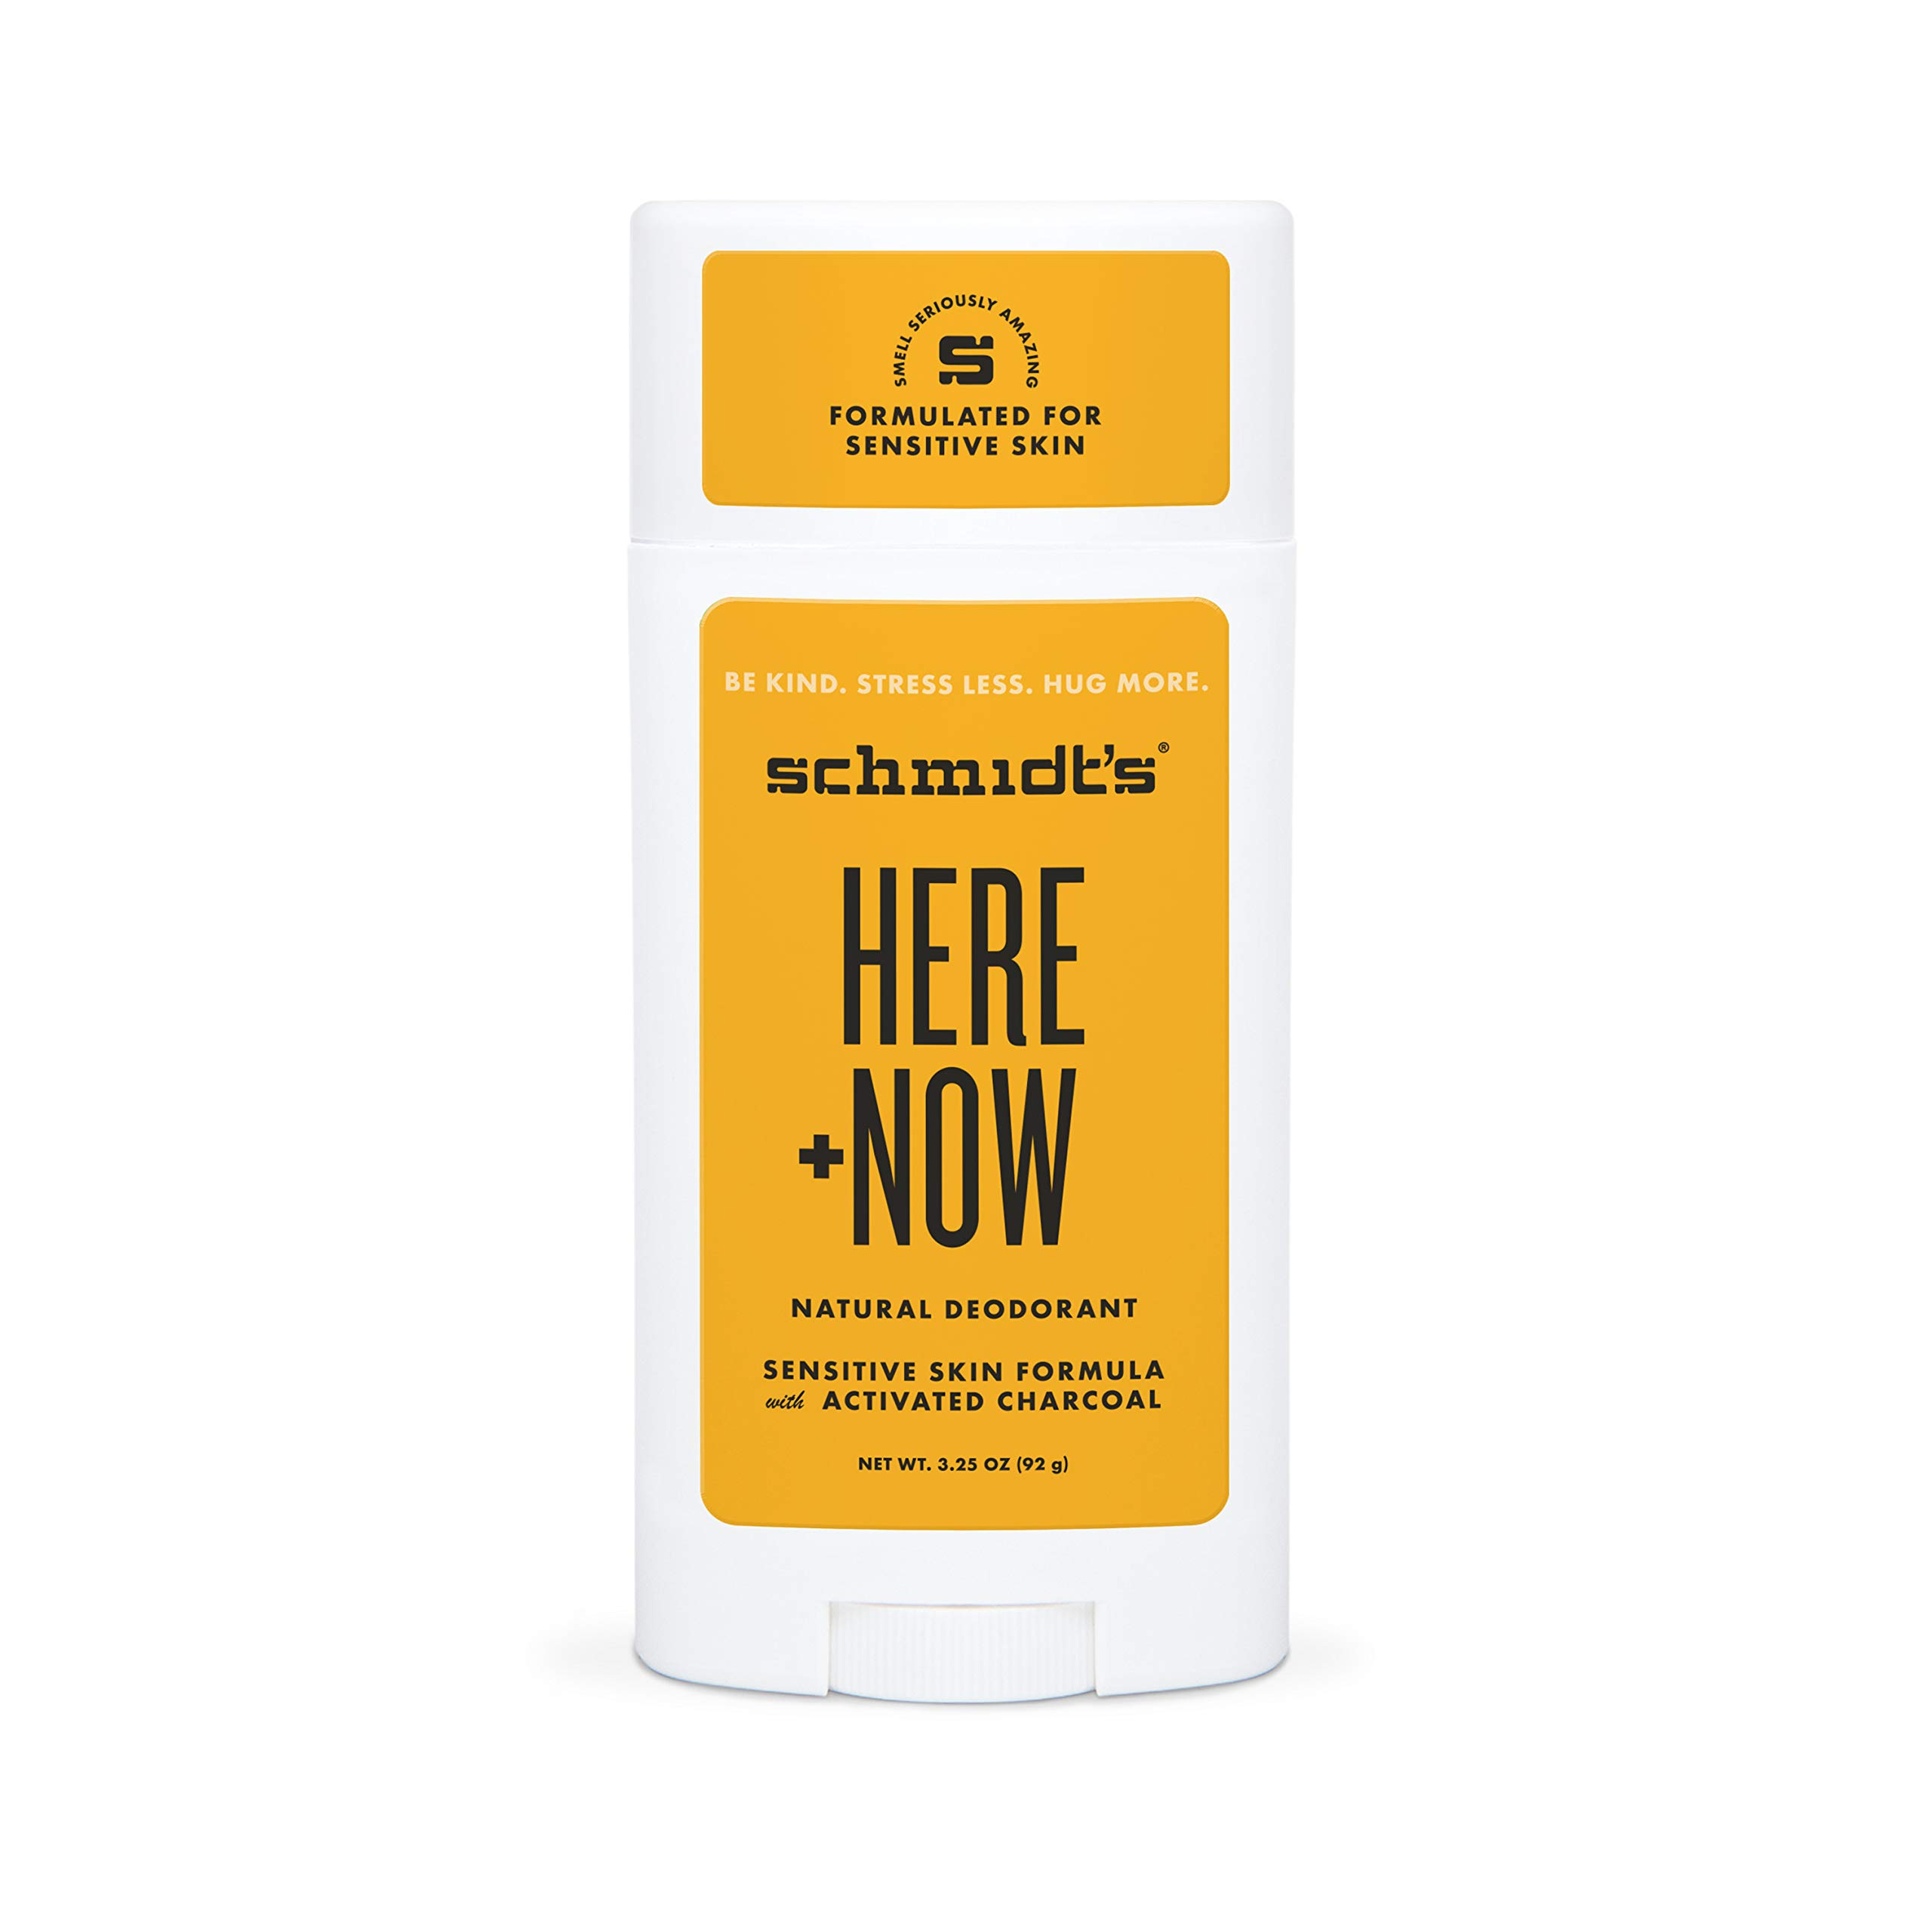 Schmidt's In Partnership with Justin Bieber, Aluminum Free Sensitive Skin Baking Soda-Free Natural Deodorant For 24 Hour Odor Protection and Freshness Here + Now Vegan, Certified Cruelty Free 3.25 oz